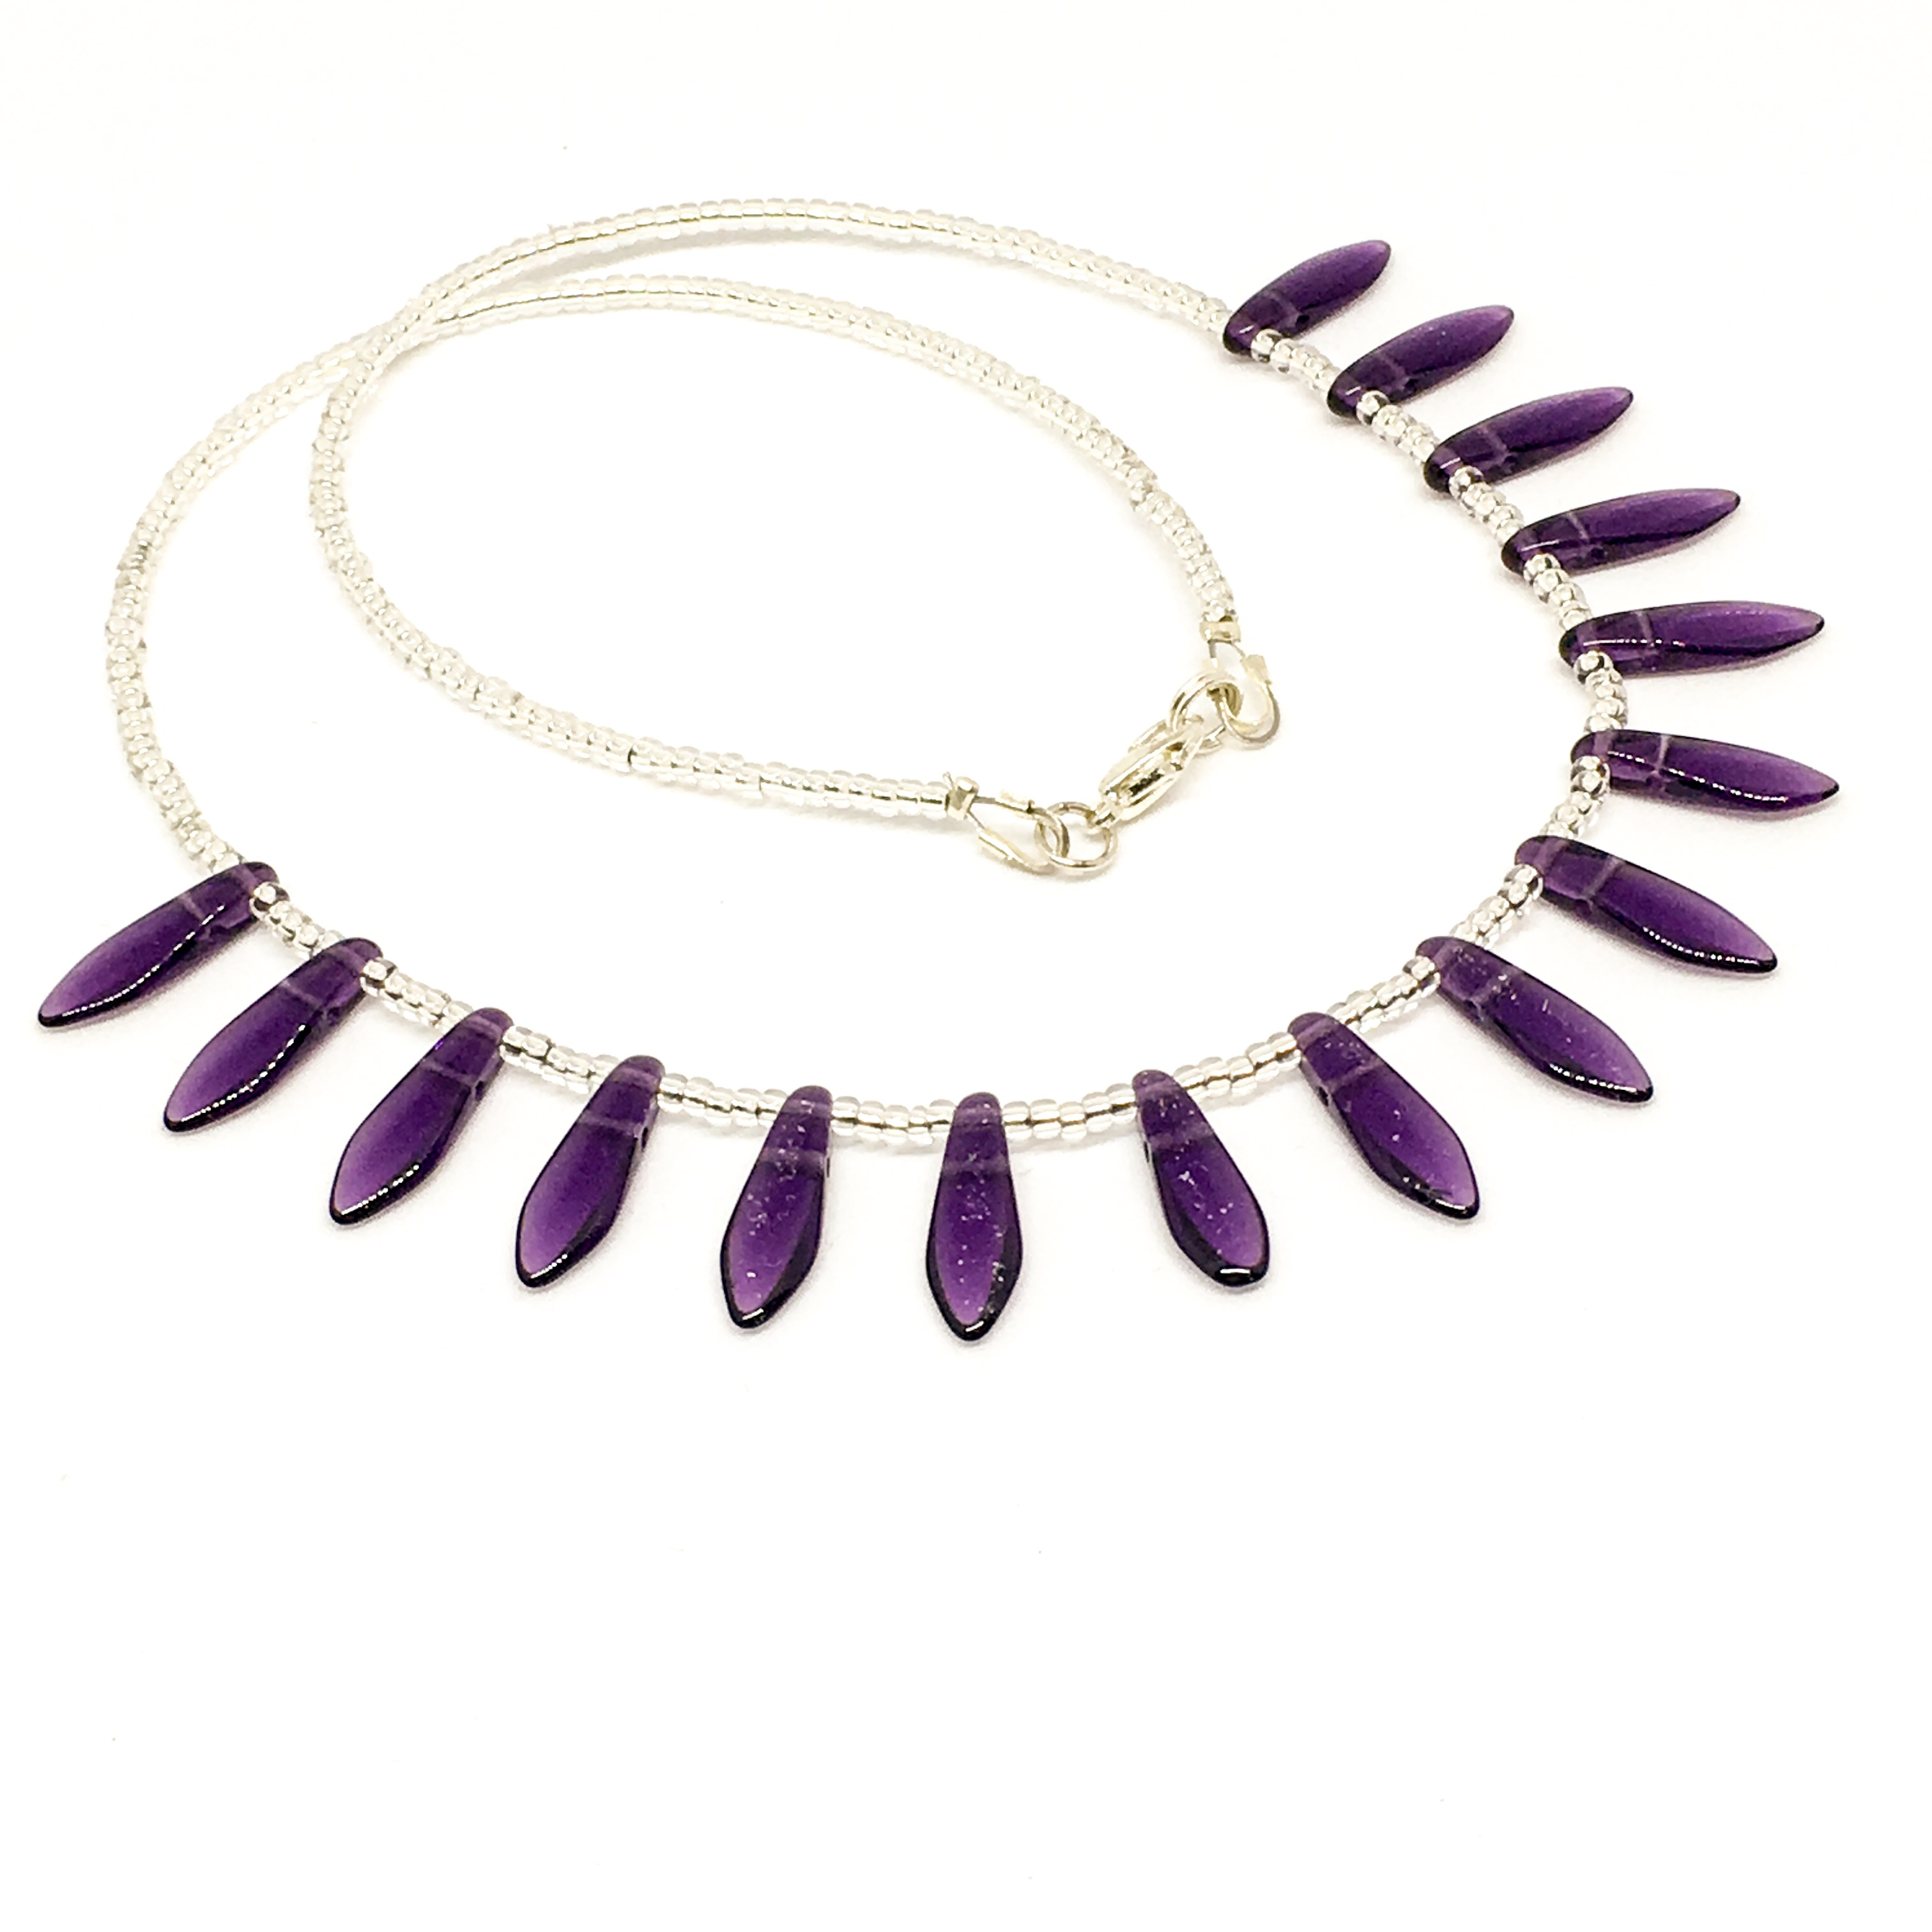 Czech crystal dagger necklace, Amethyst